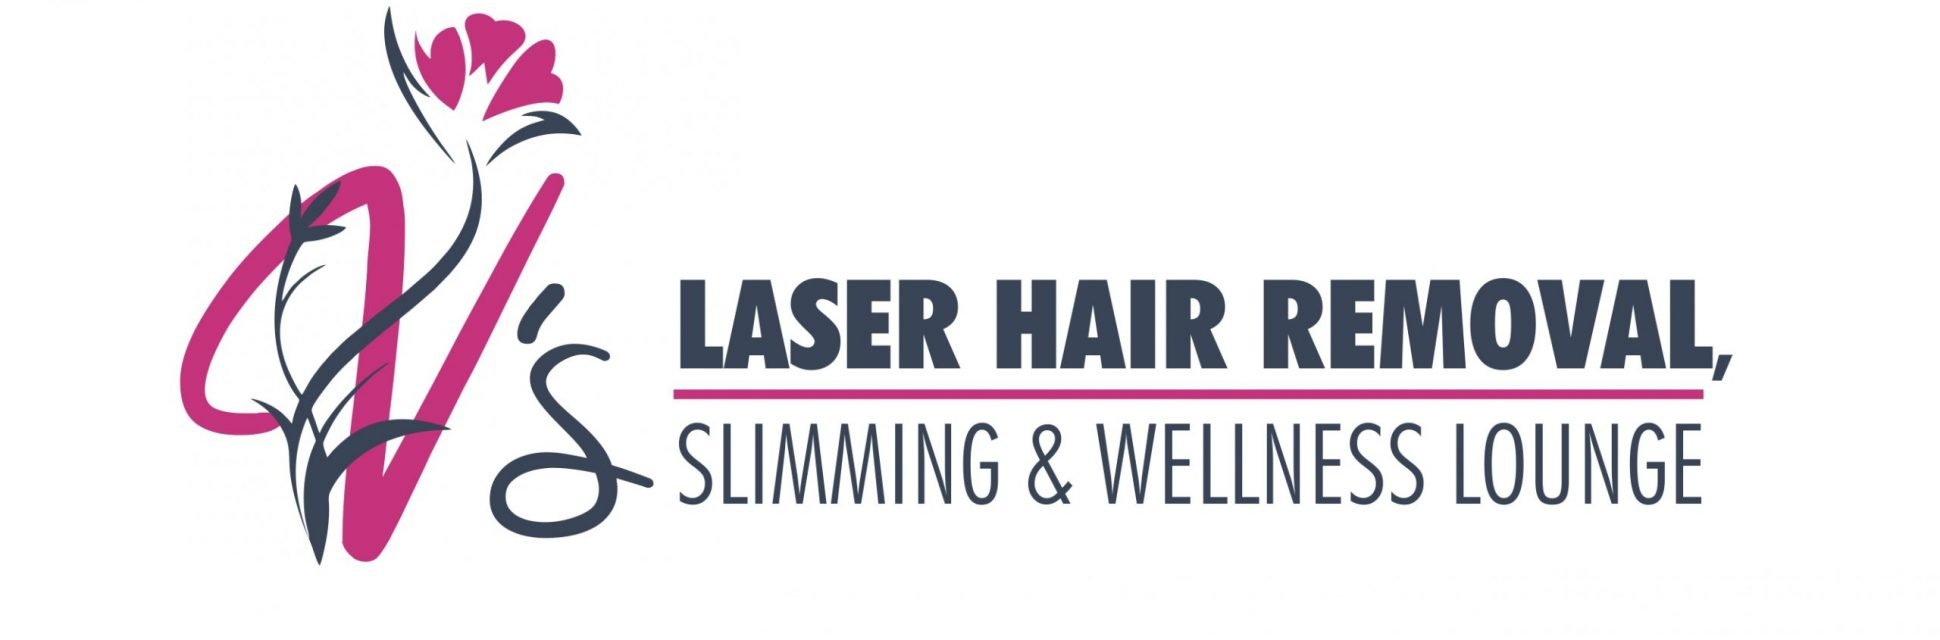 V's Laser Hair Removal Lounge